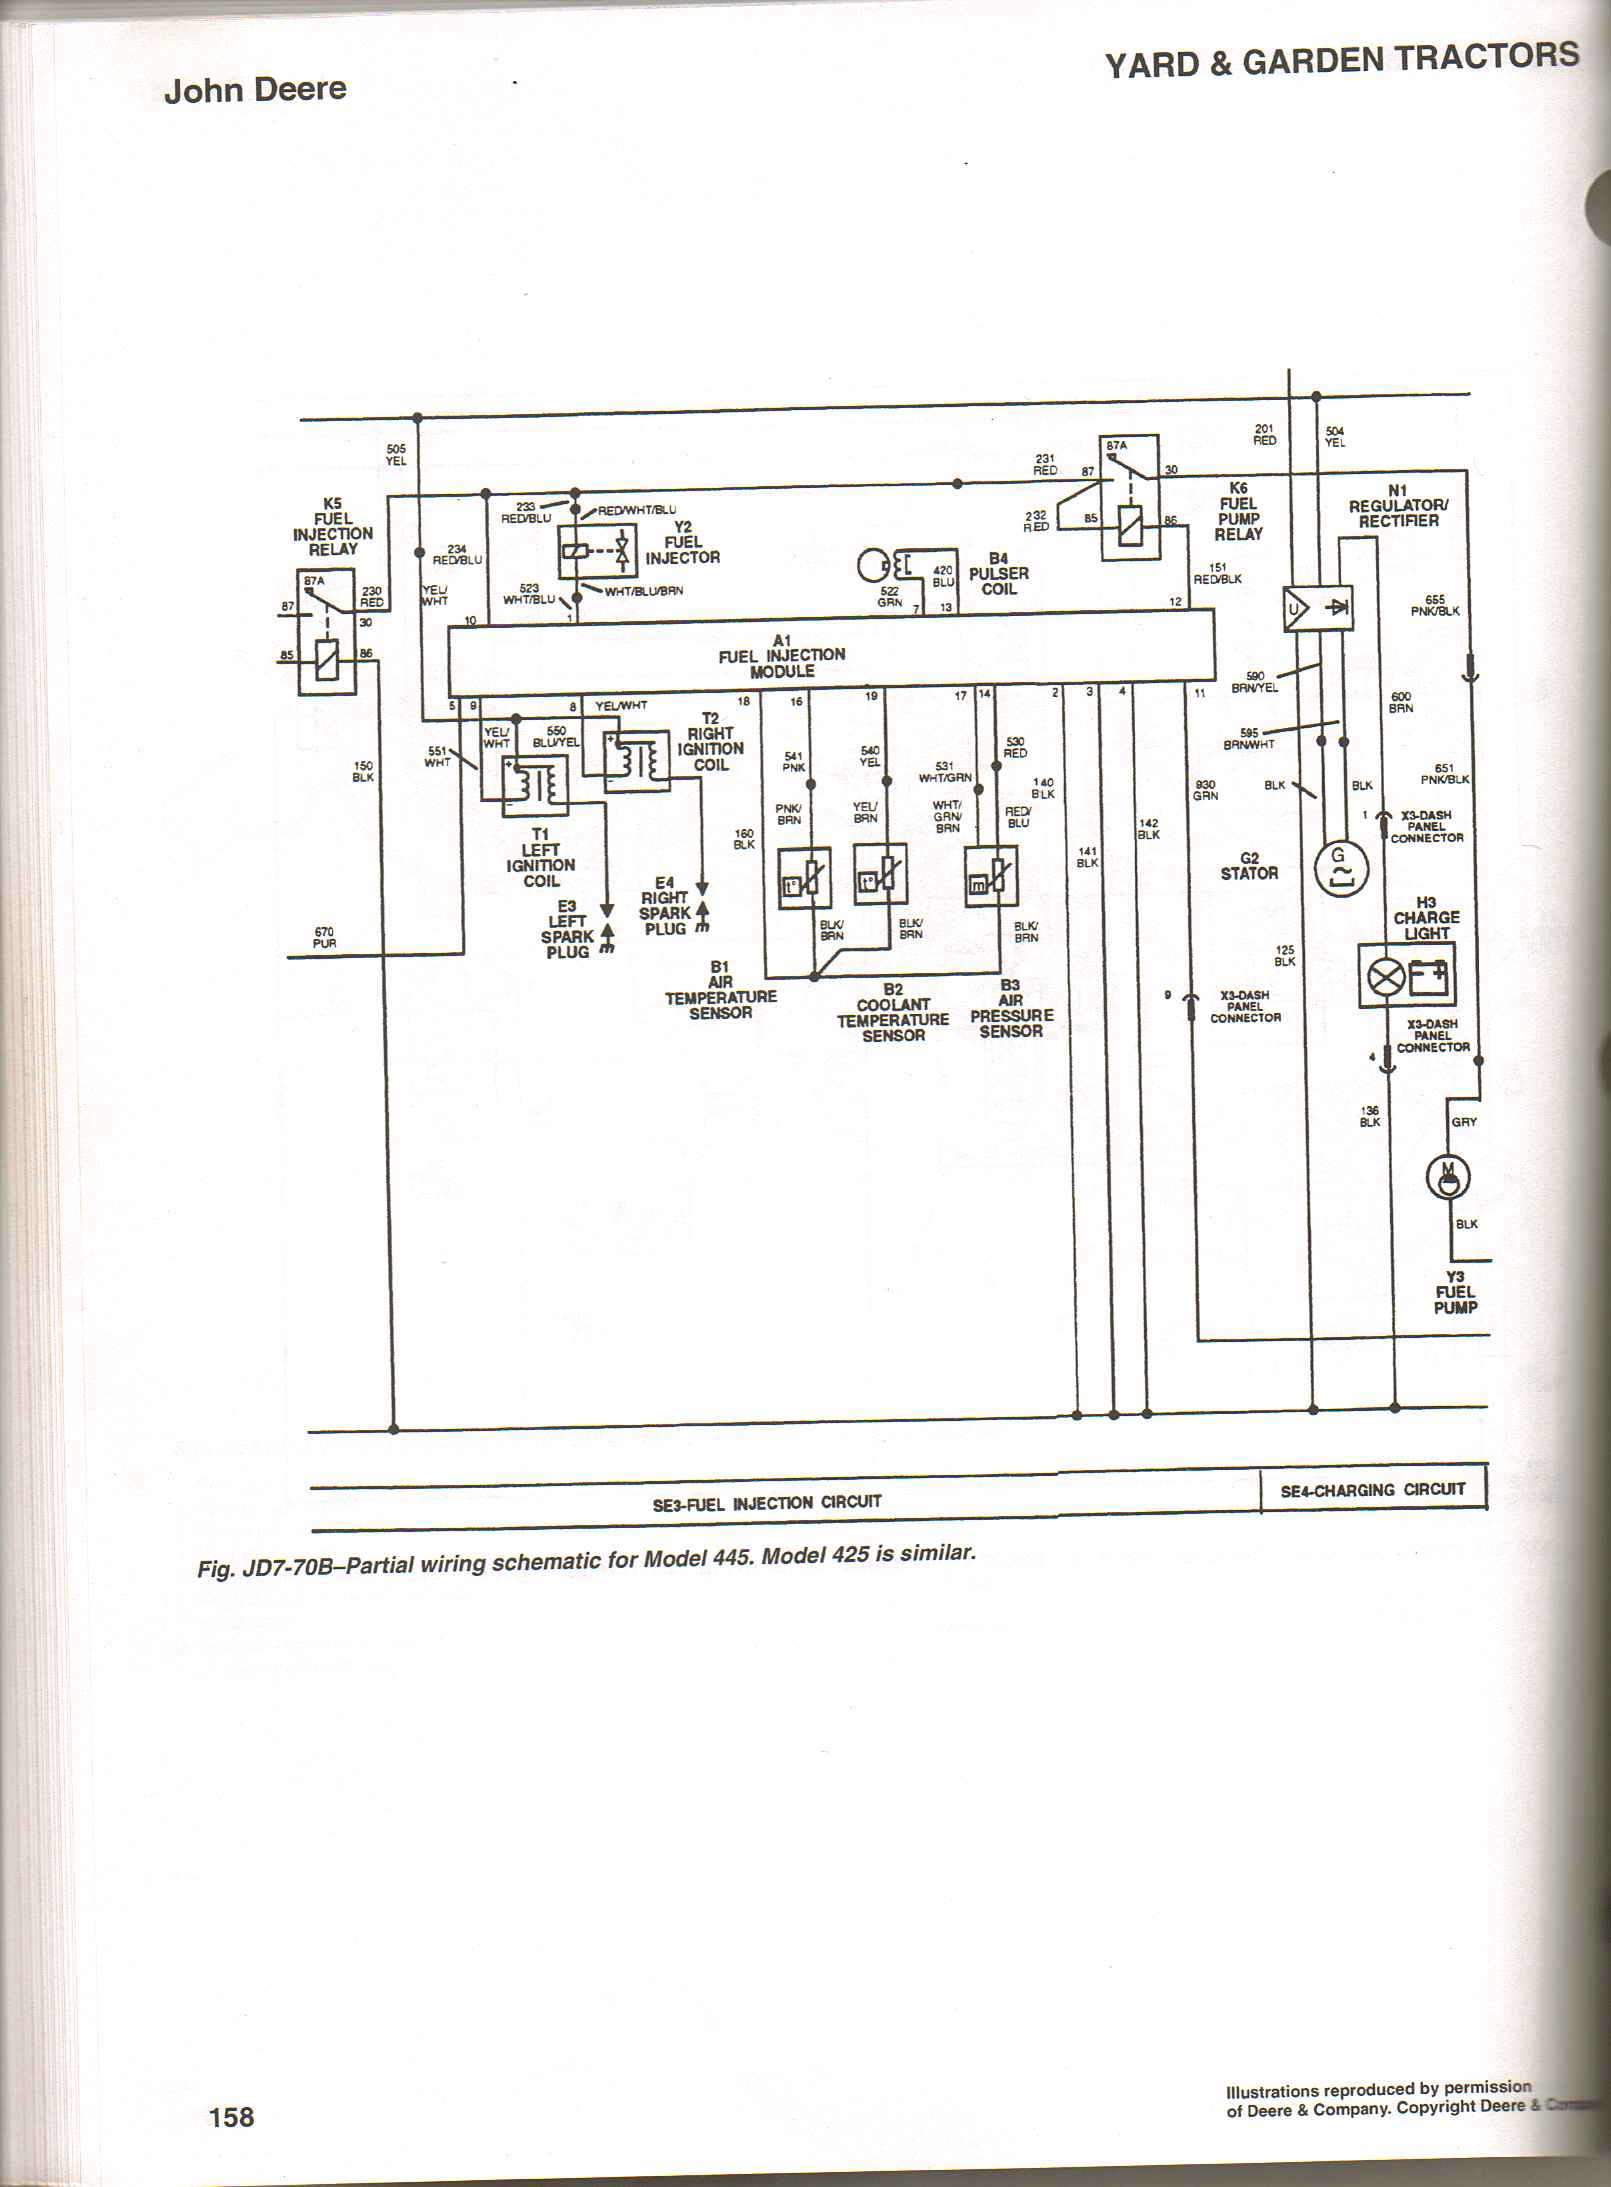 Trying To Startup Deere 520x Mower For First Time This Season John 7 Pin Plug Wiring Diagram Free Download Full Size Image